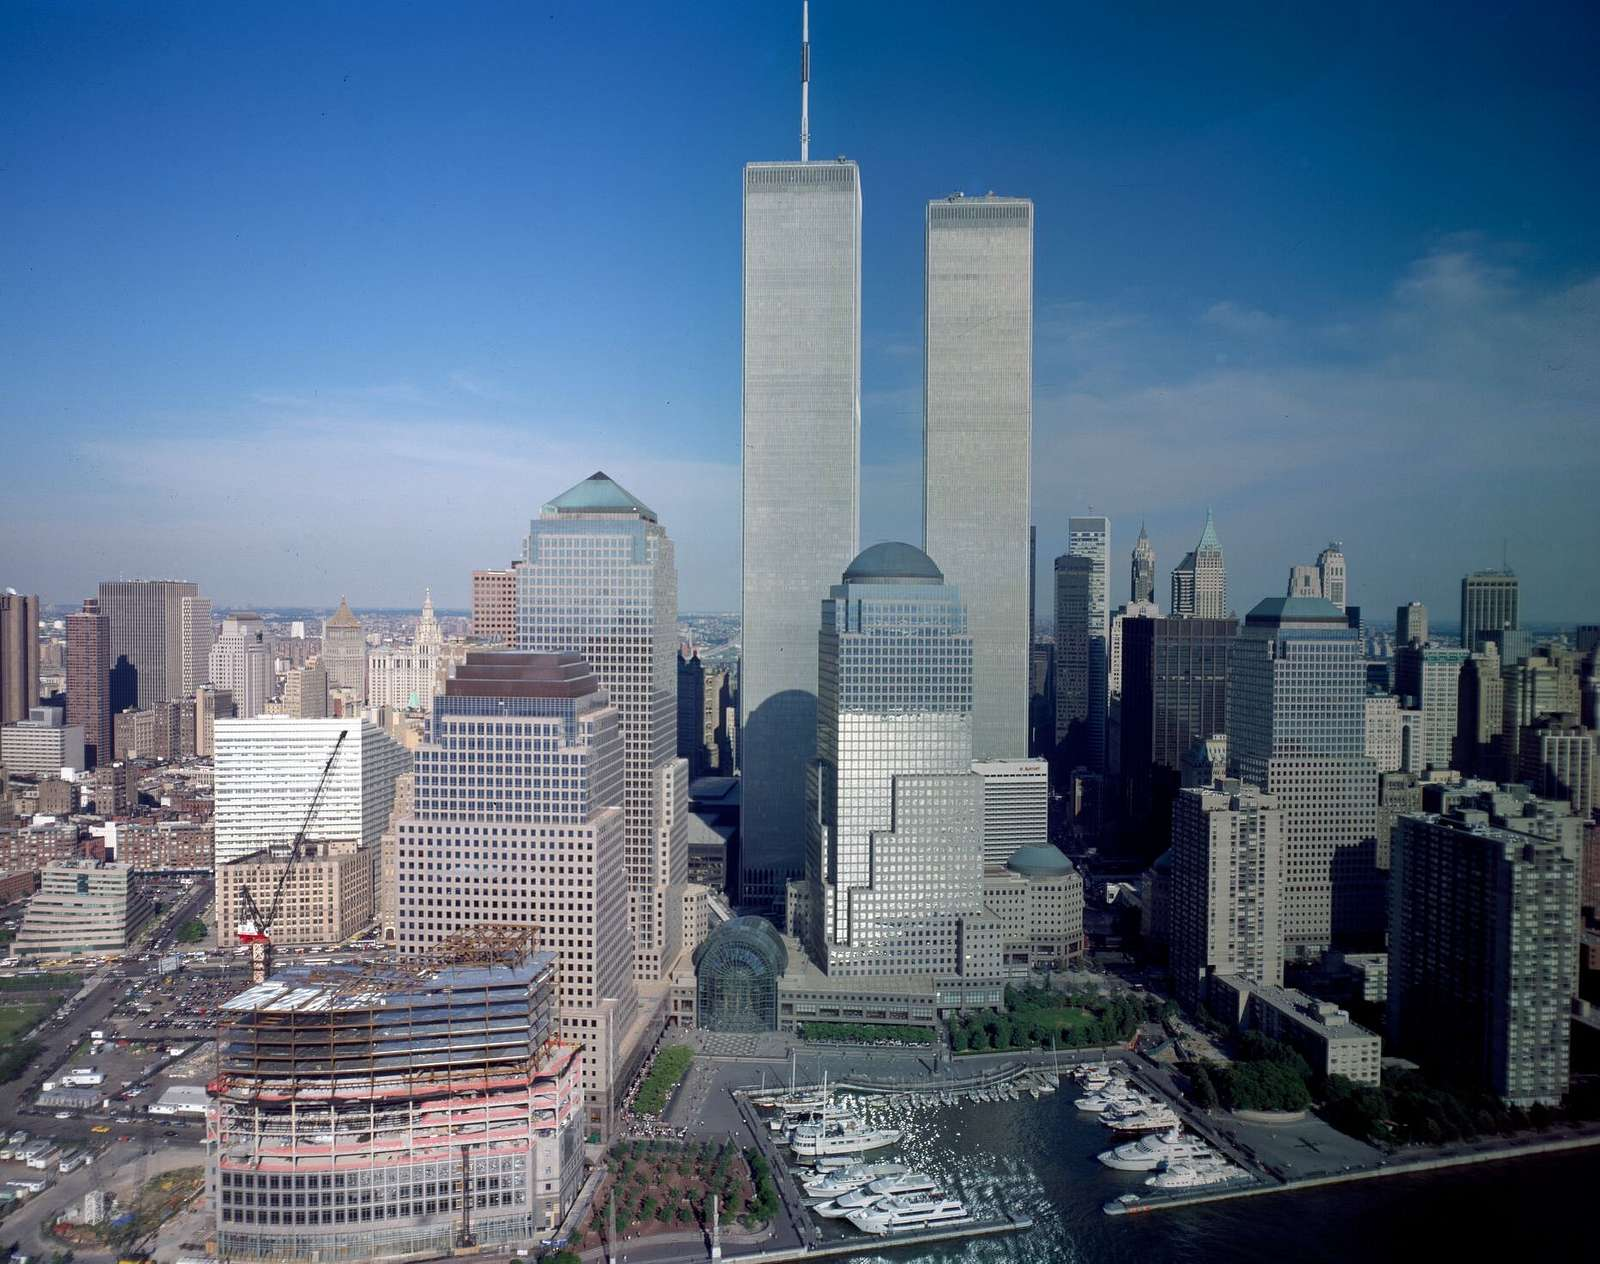 Aerial view of New York City, with Twin Towers of the World Trade Center visible